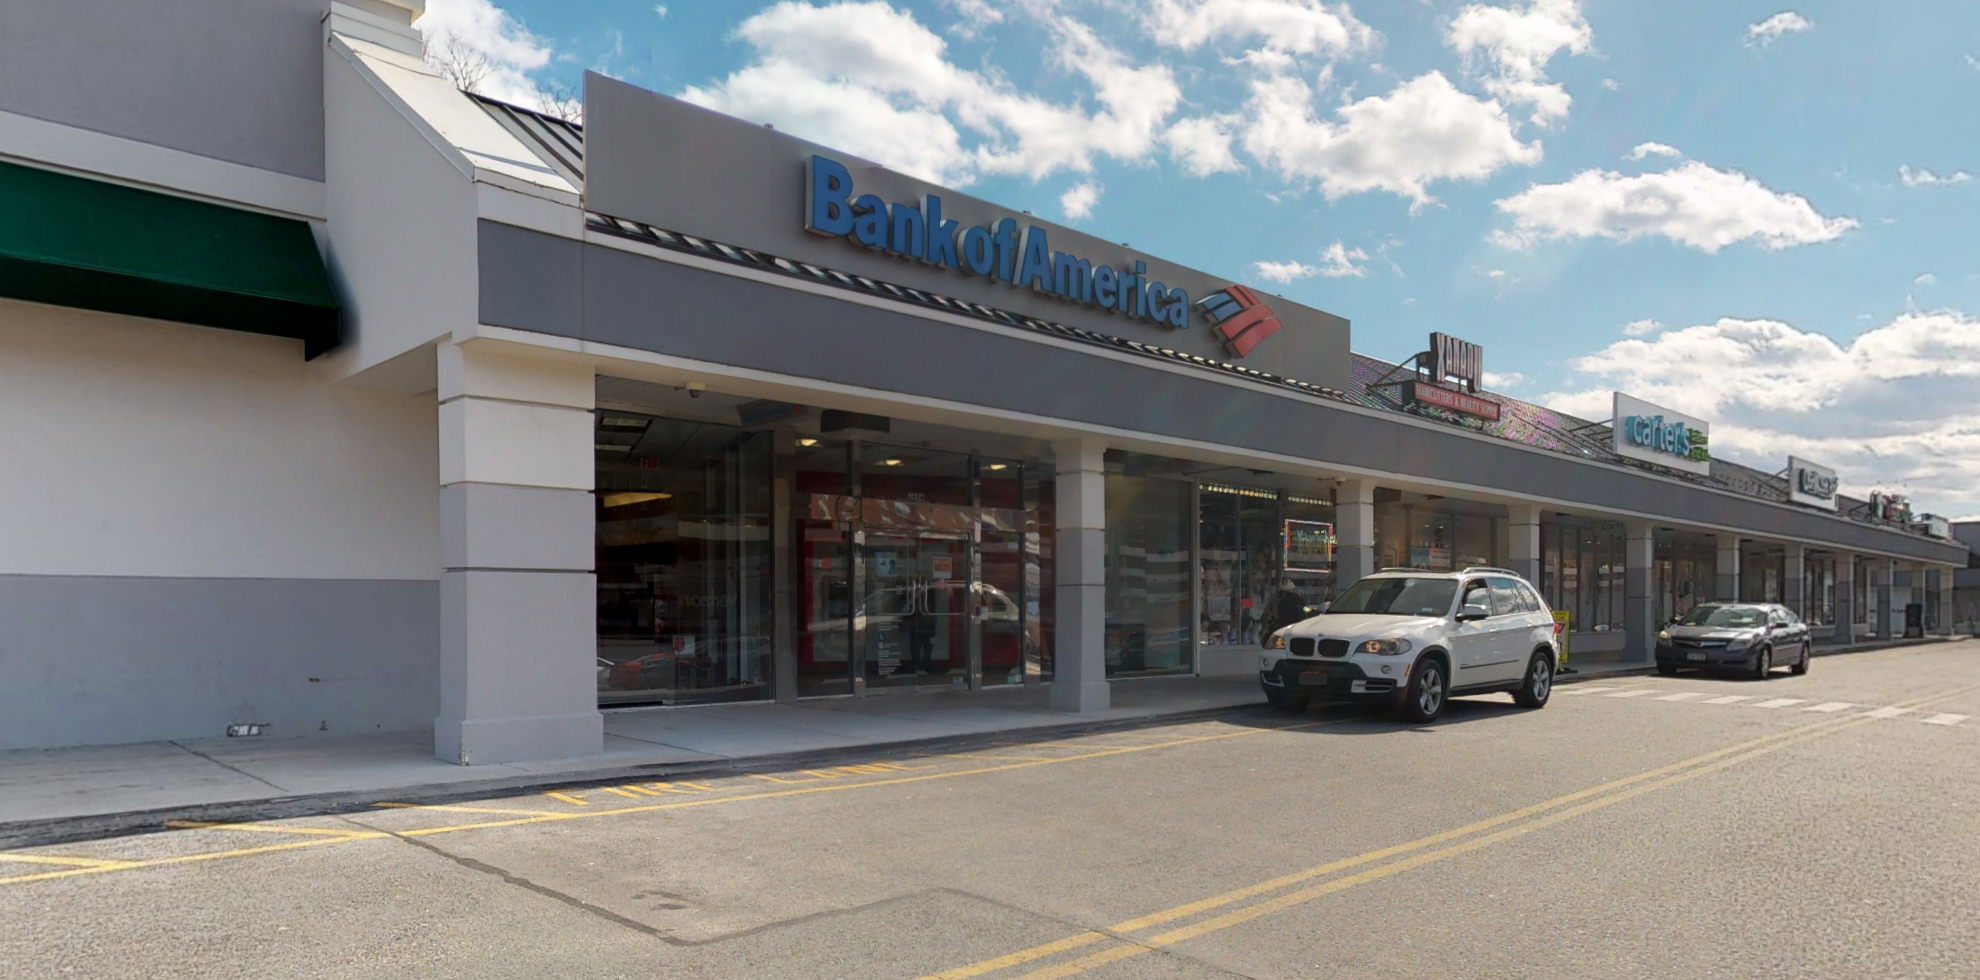 Bank of America financial center with drive-thru ATM   2604 Central Park Ave, Yonkers, NY 10710